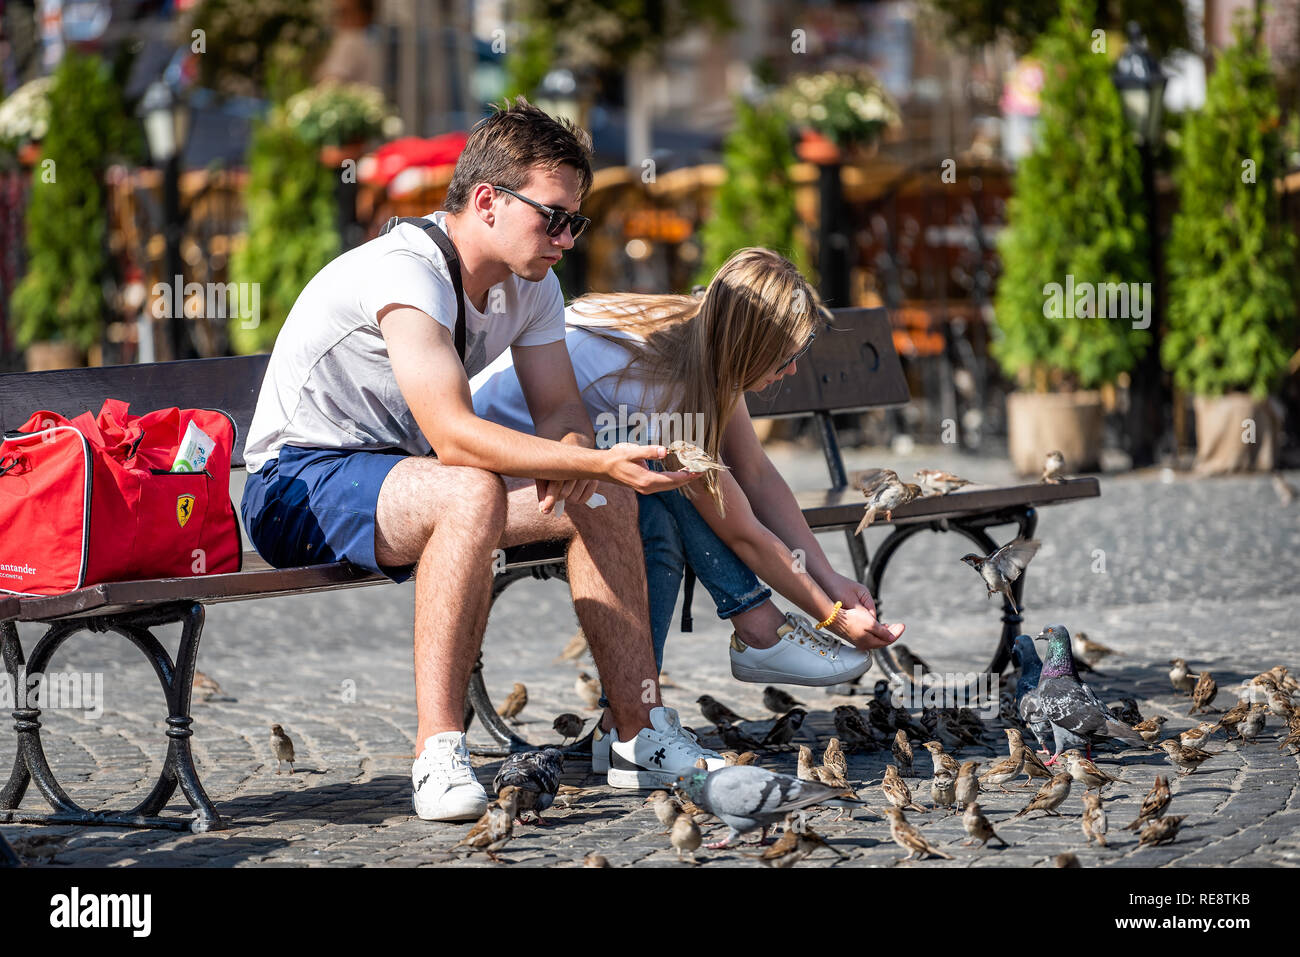 Warsaw, Poland - August 23, 2018: Old town market square with historic cobblestone street during summer day closeup of couple feeding birds sitting on - Stock Image